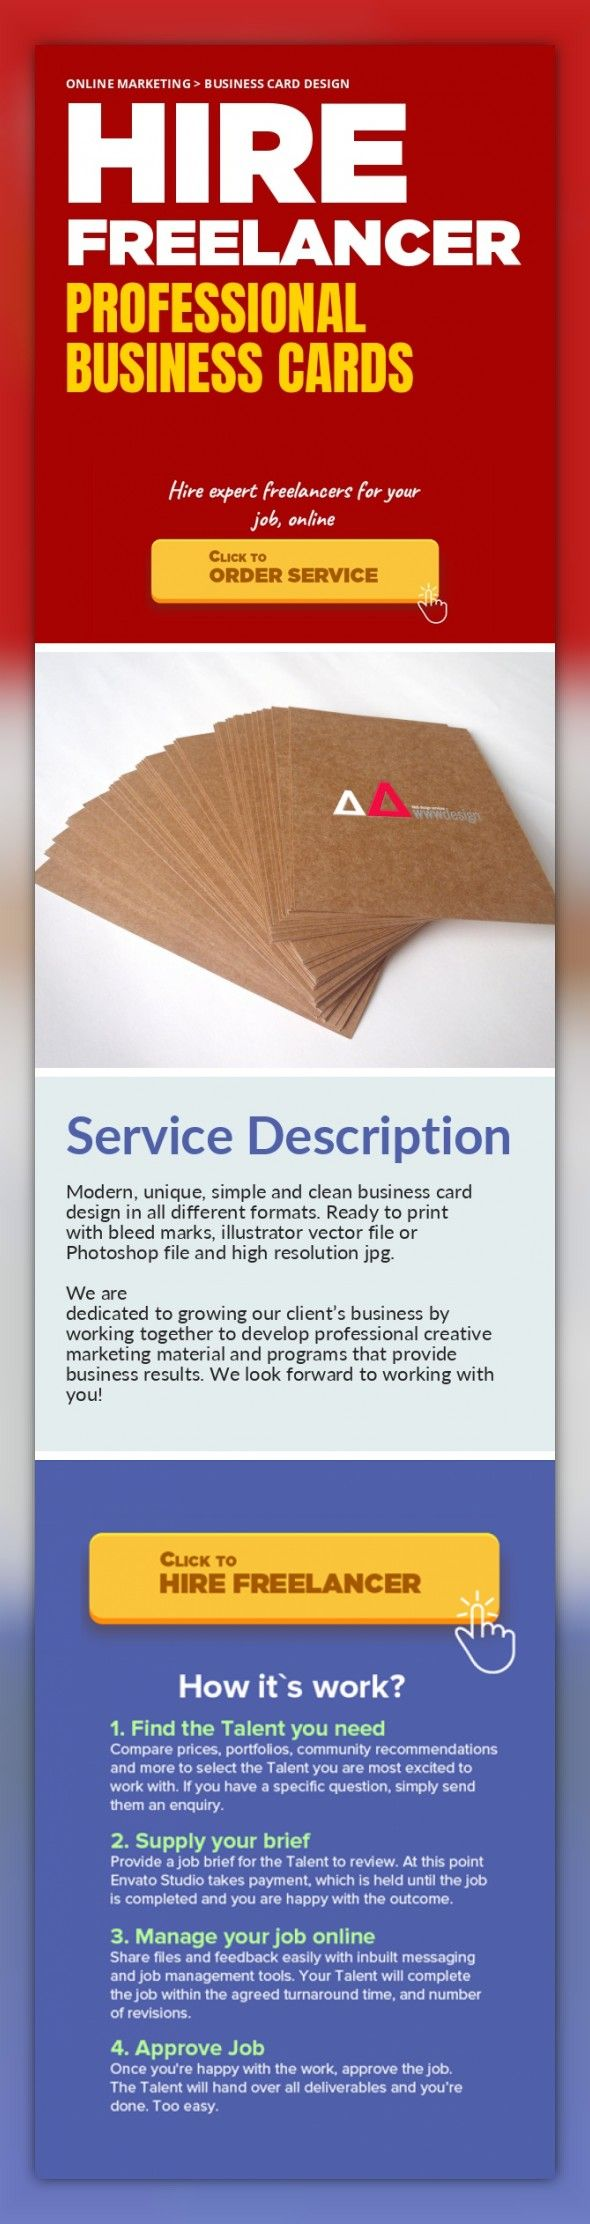 Professional business cards online marketing business card design professional business cards online marketing business card design modern unique simple and clean business card design in all different formats reheart Choice Image